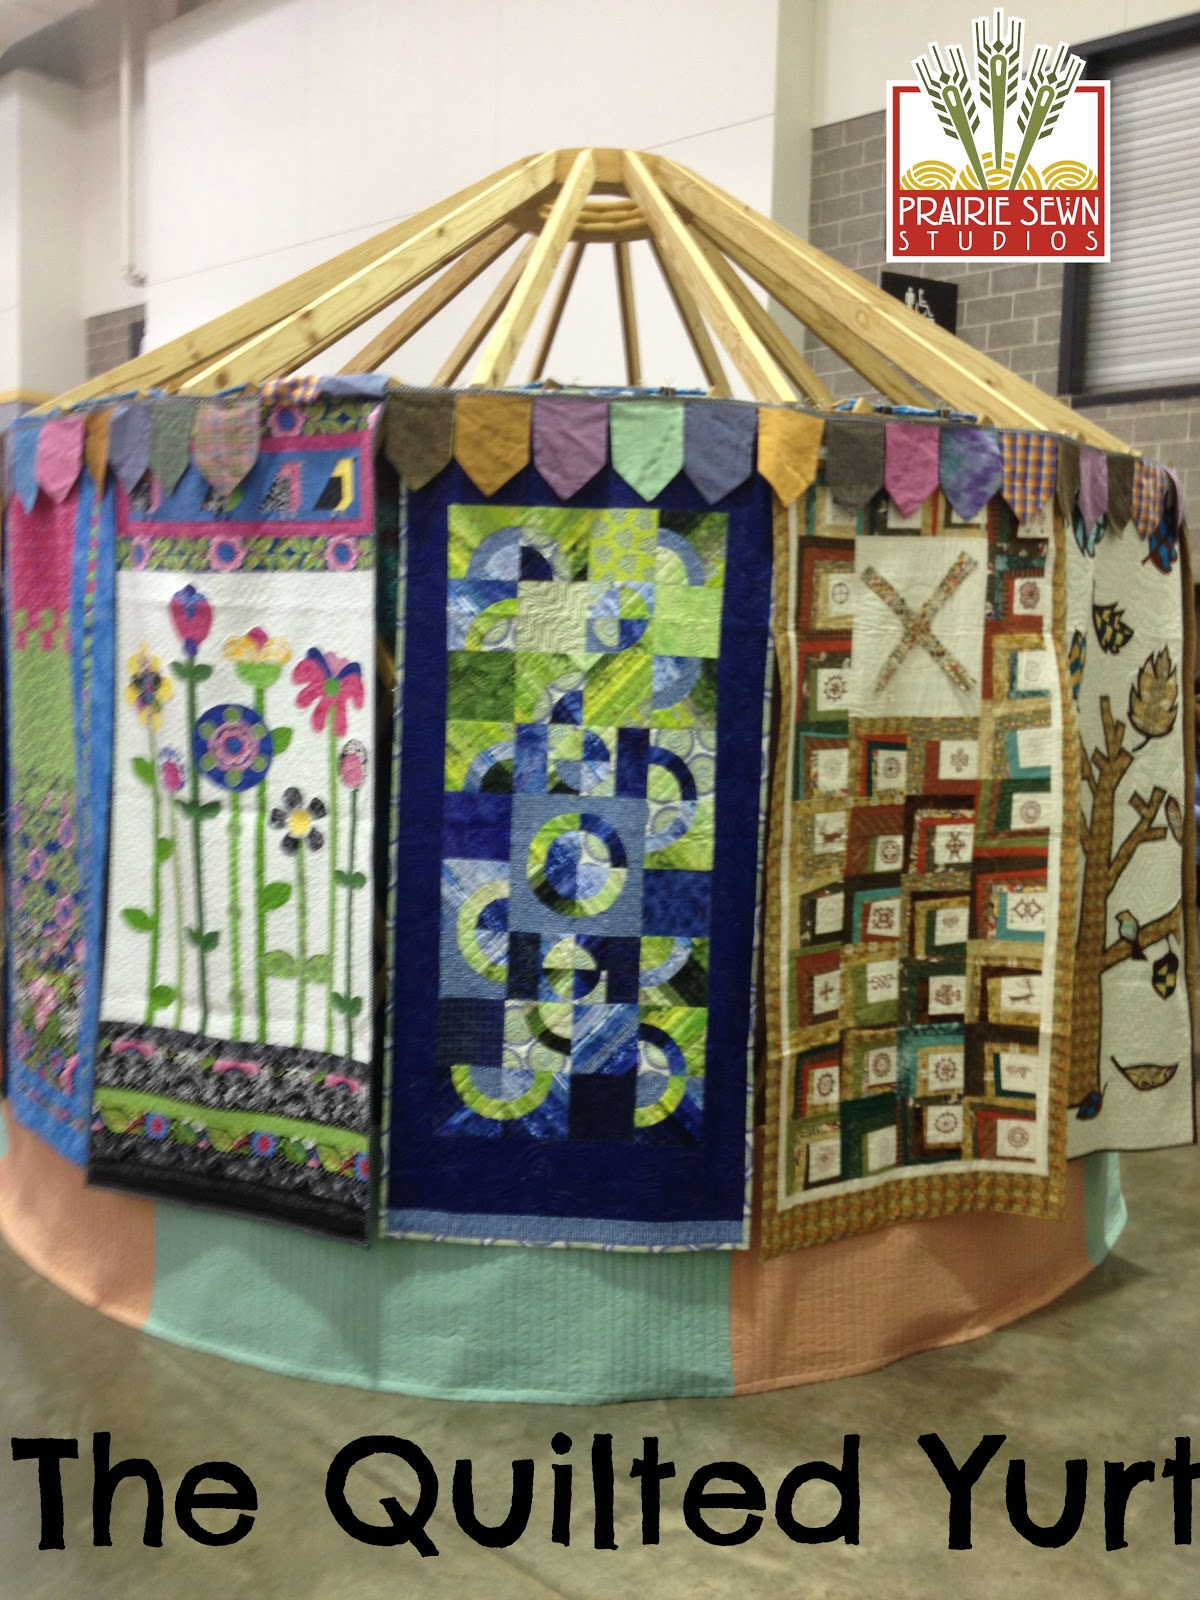 Quilted Yurt at Wisconsin Quilt Expo